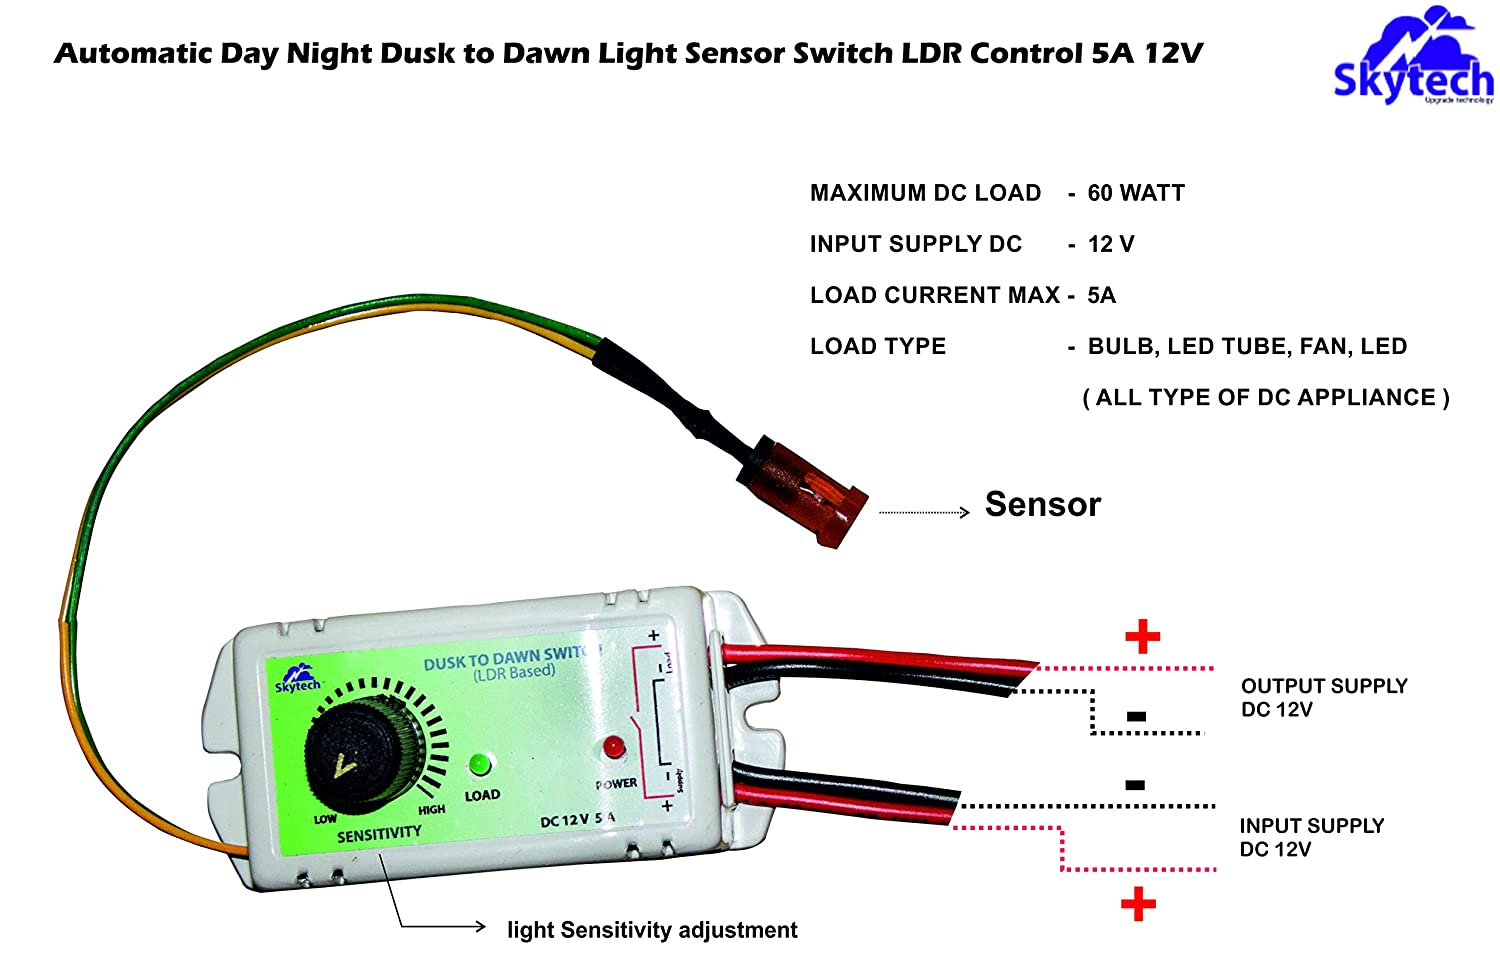 Skytech Automatic Day Night Dusk To Dawn Light Sensor Switch Ldr Wiring Diagram For Control 5a 12v Dc Garden Outdoors